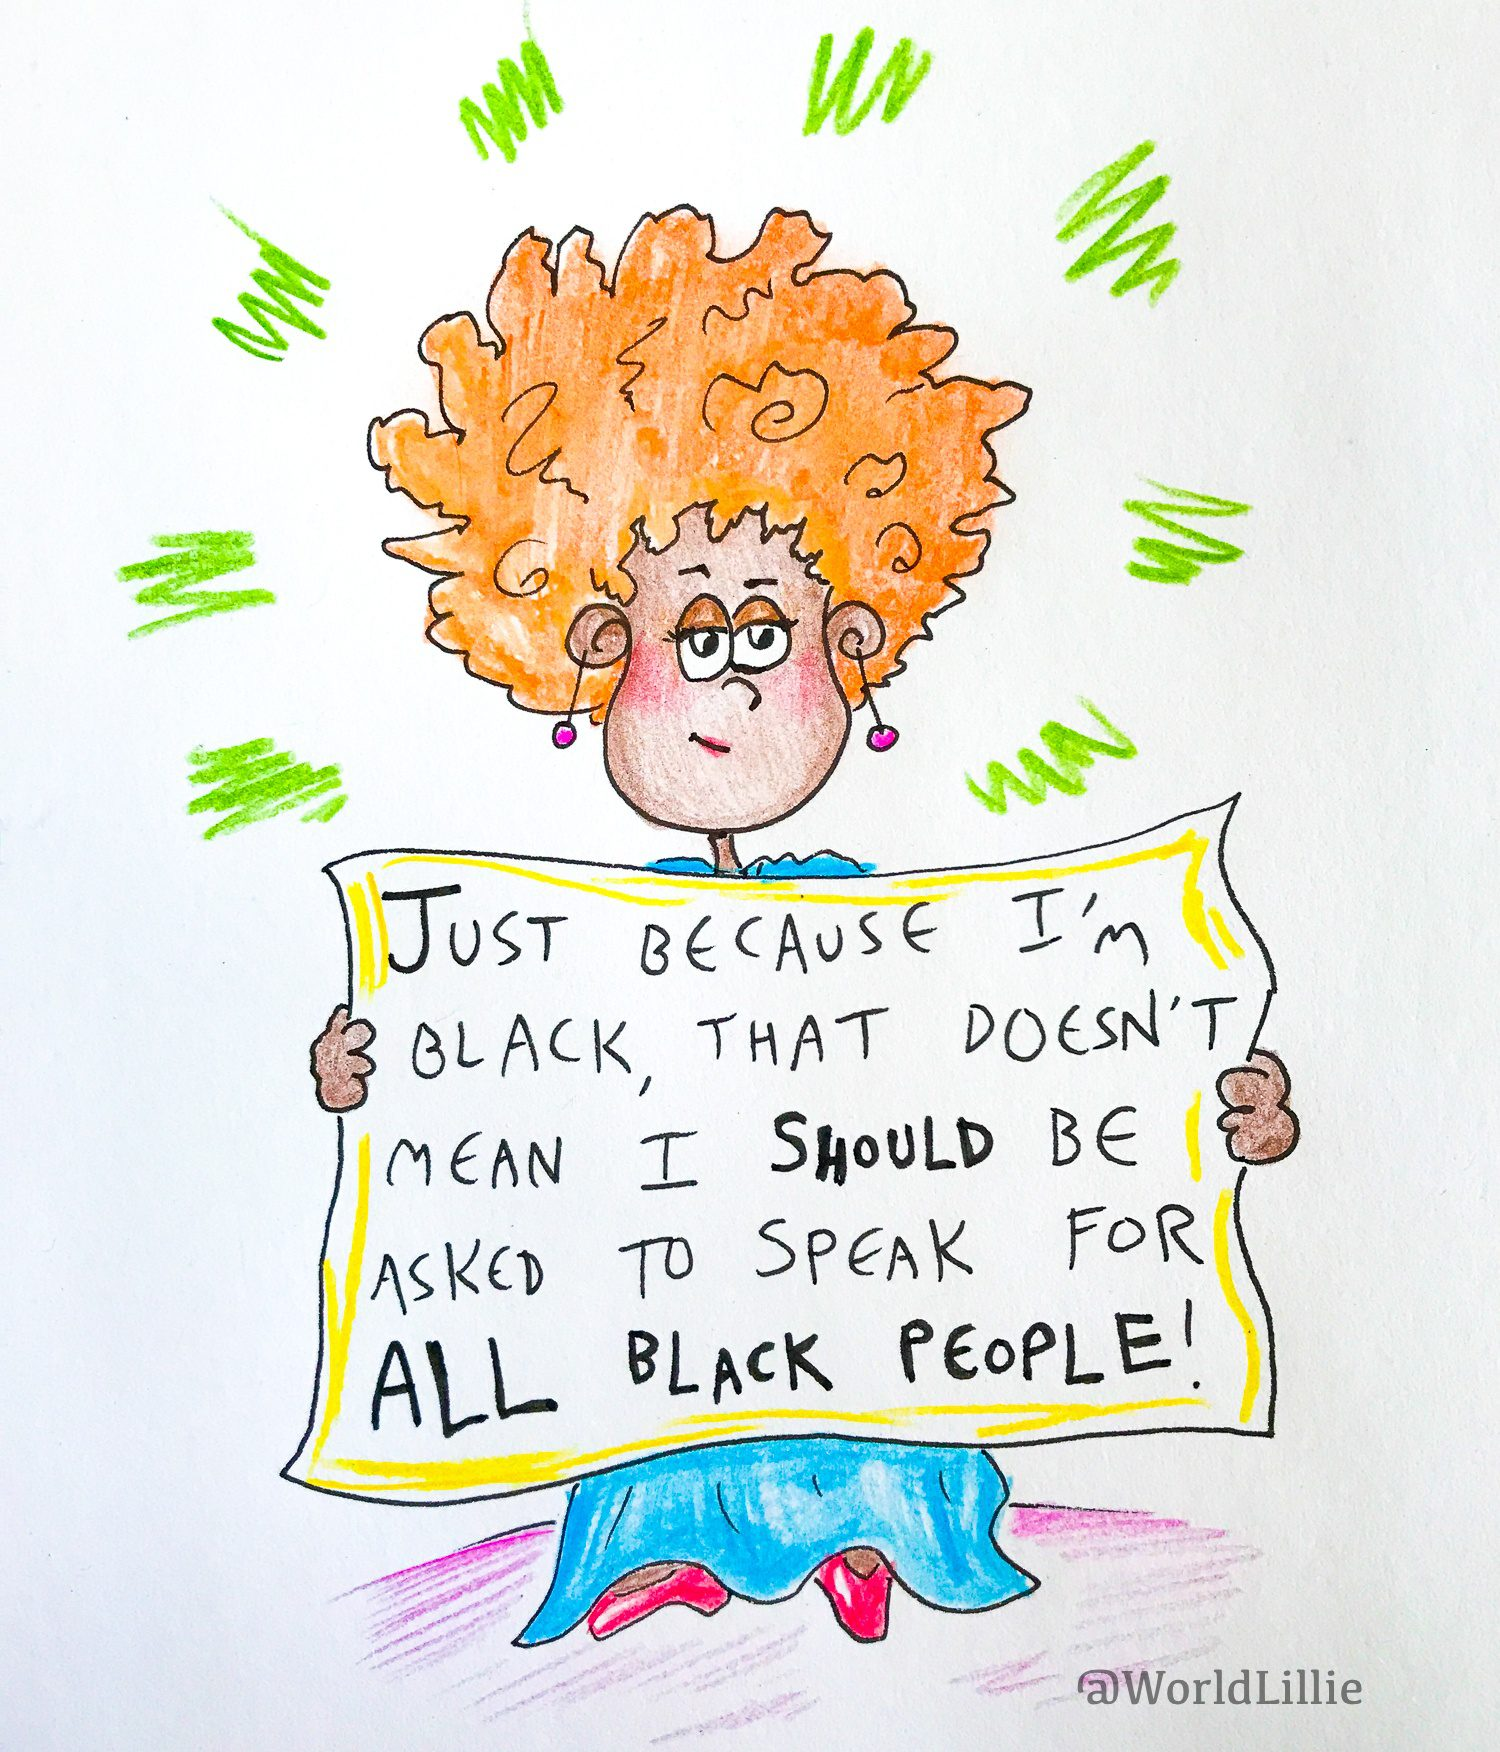 Microaggression: Speaking for all Black people